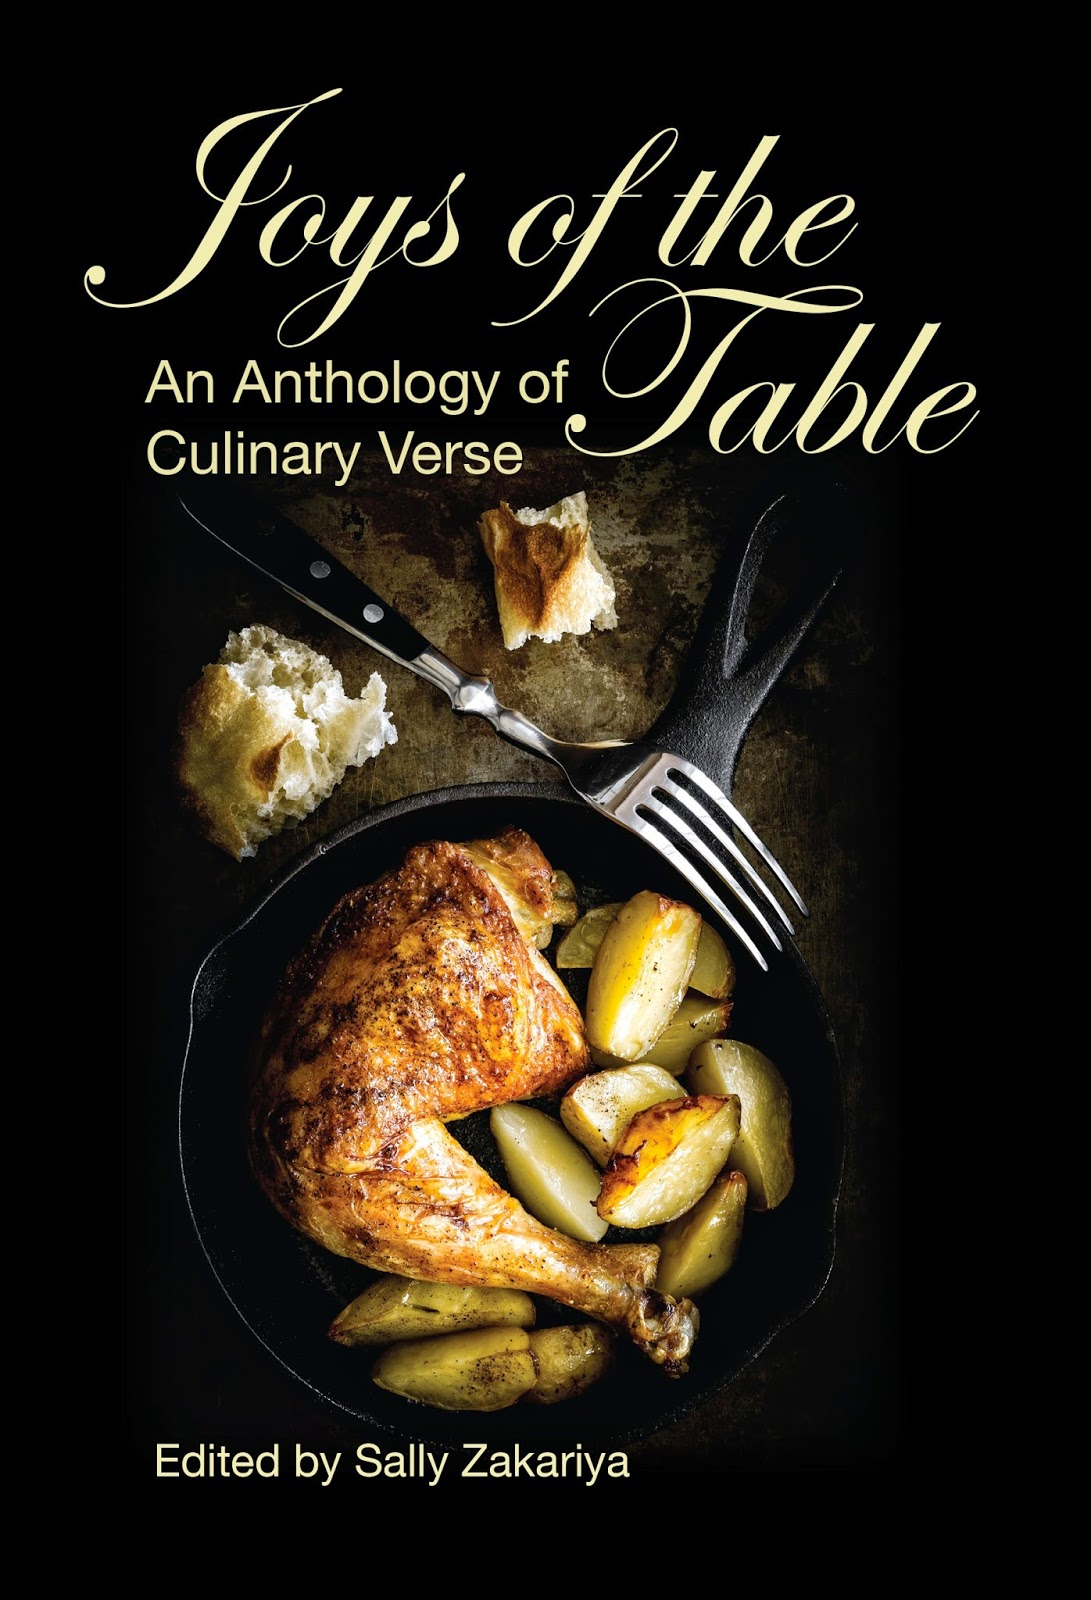 http://www.amazon.com/Table-Edited-Created-Sally-Zakariya/dp/1634640365/ref=sr_1_1?s=books&ie=UTF8&qid=1430591950&sr=1-1&keywords=joys+of+the+table